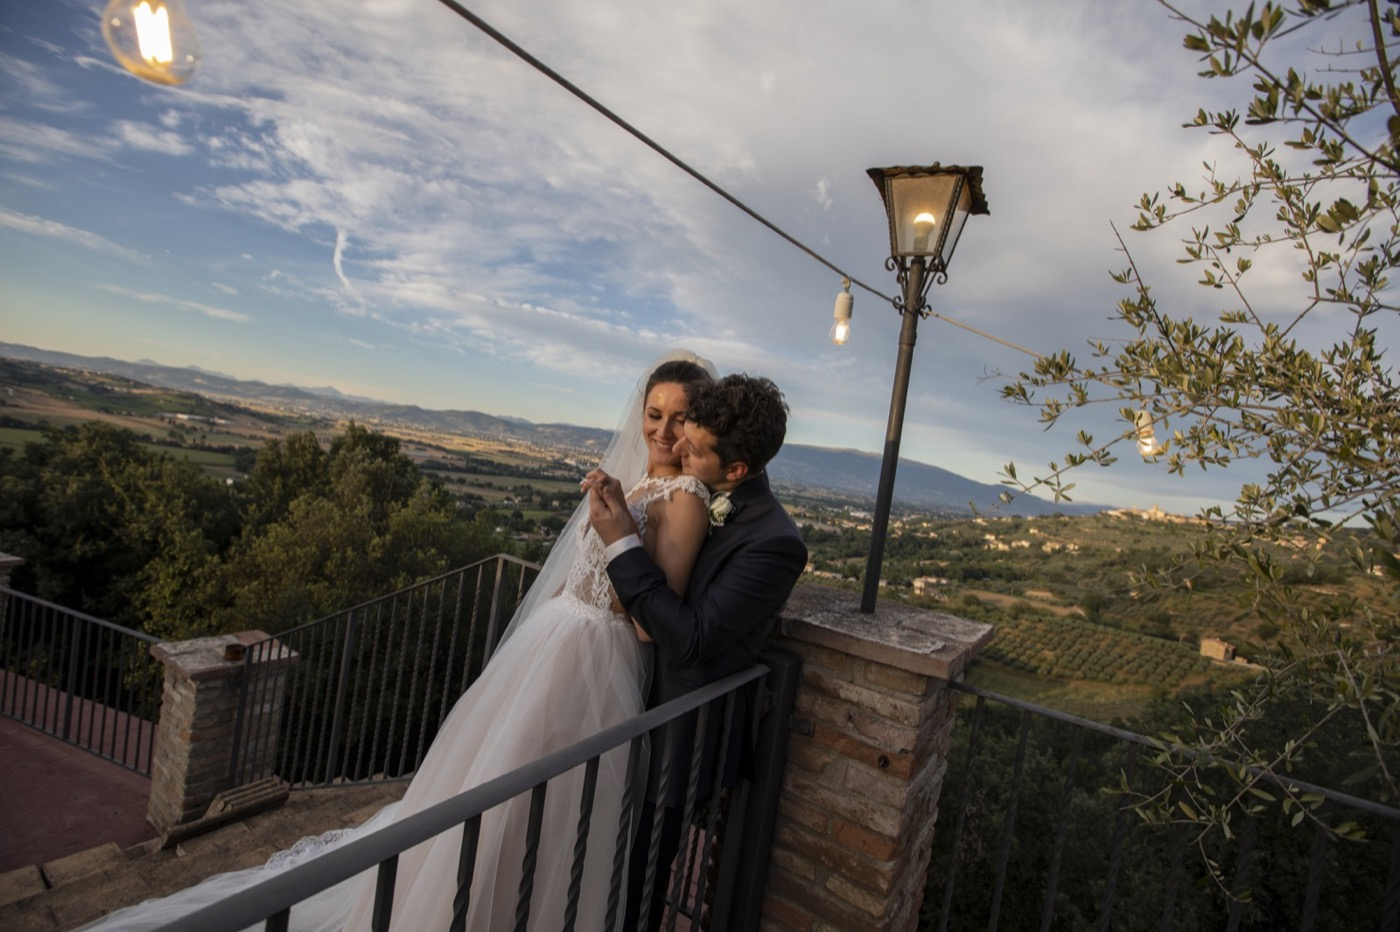 Claudio-Coppola-wedding-photographer-castello-rosciano-torgiano-55